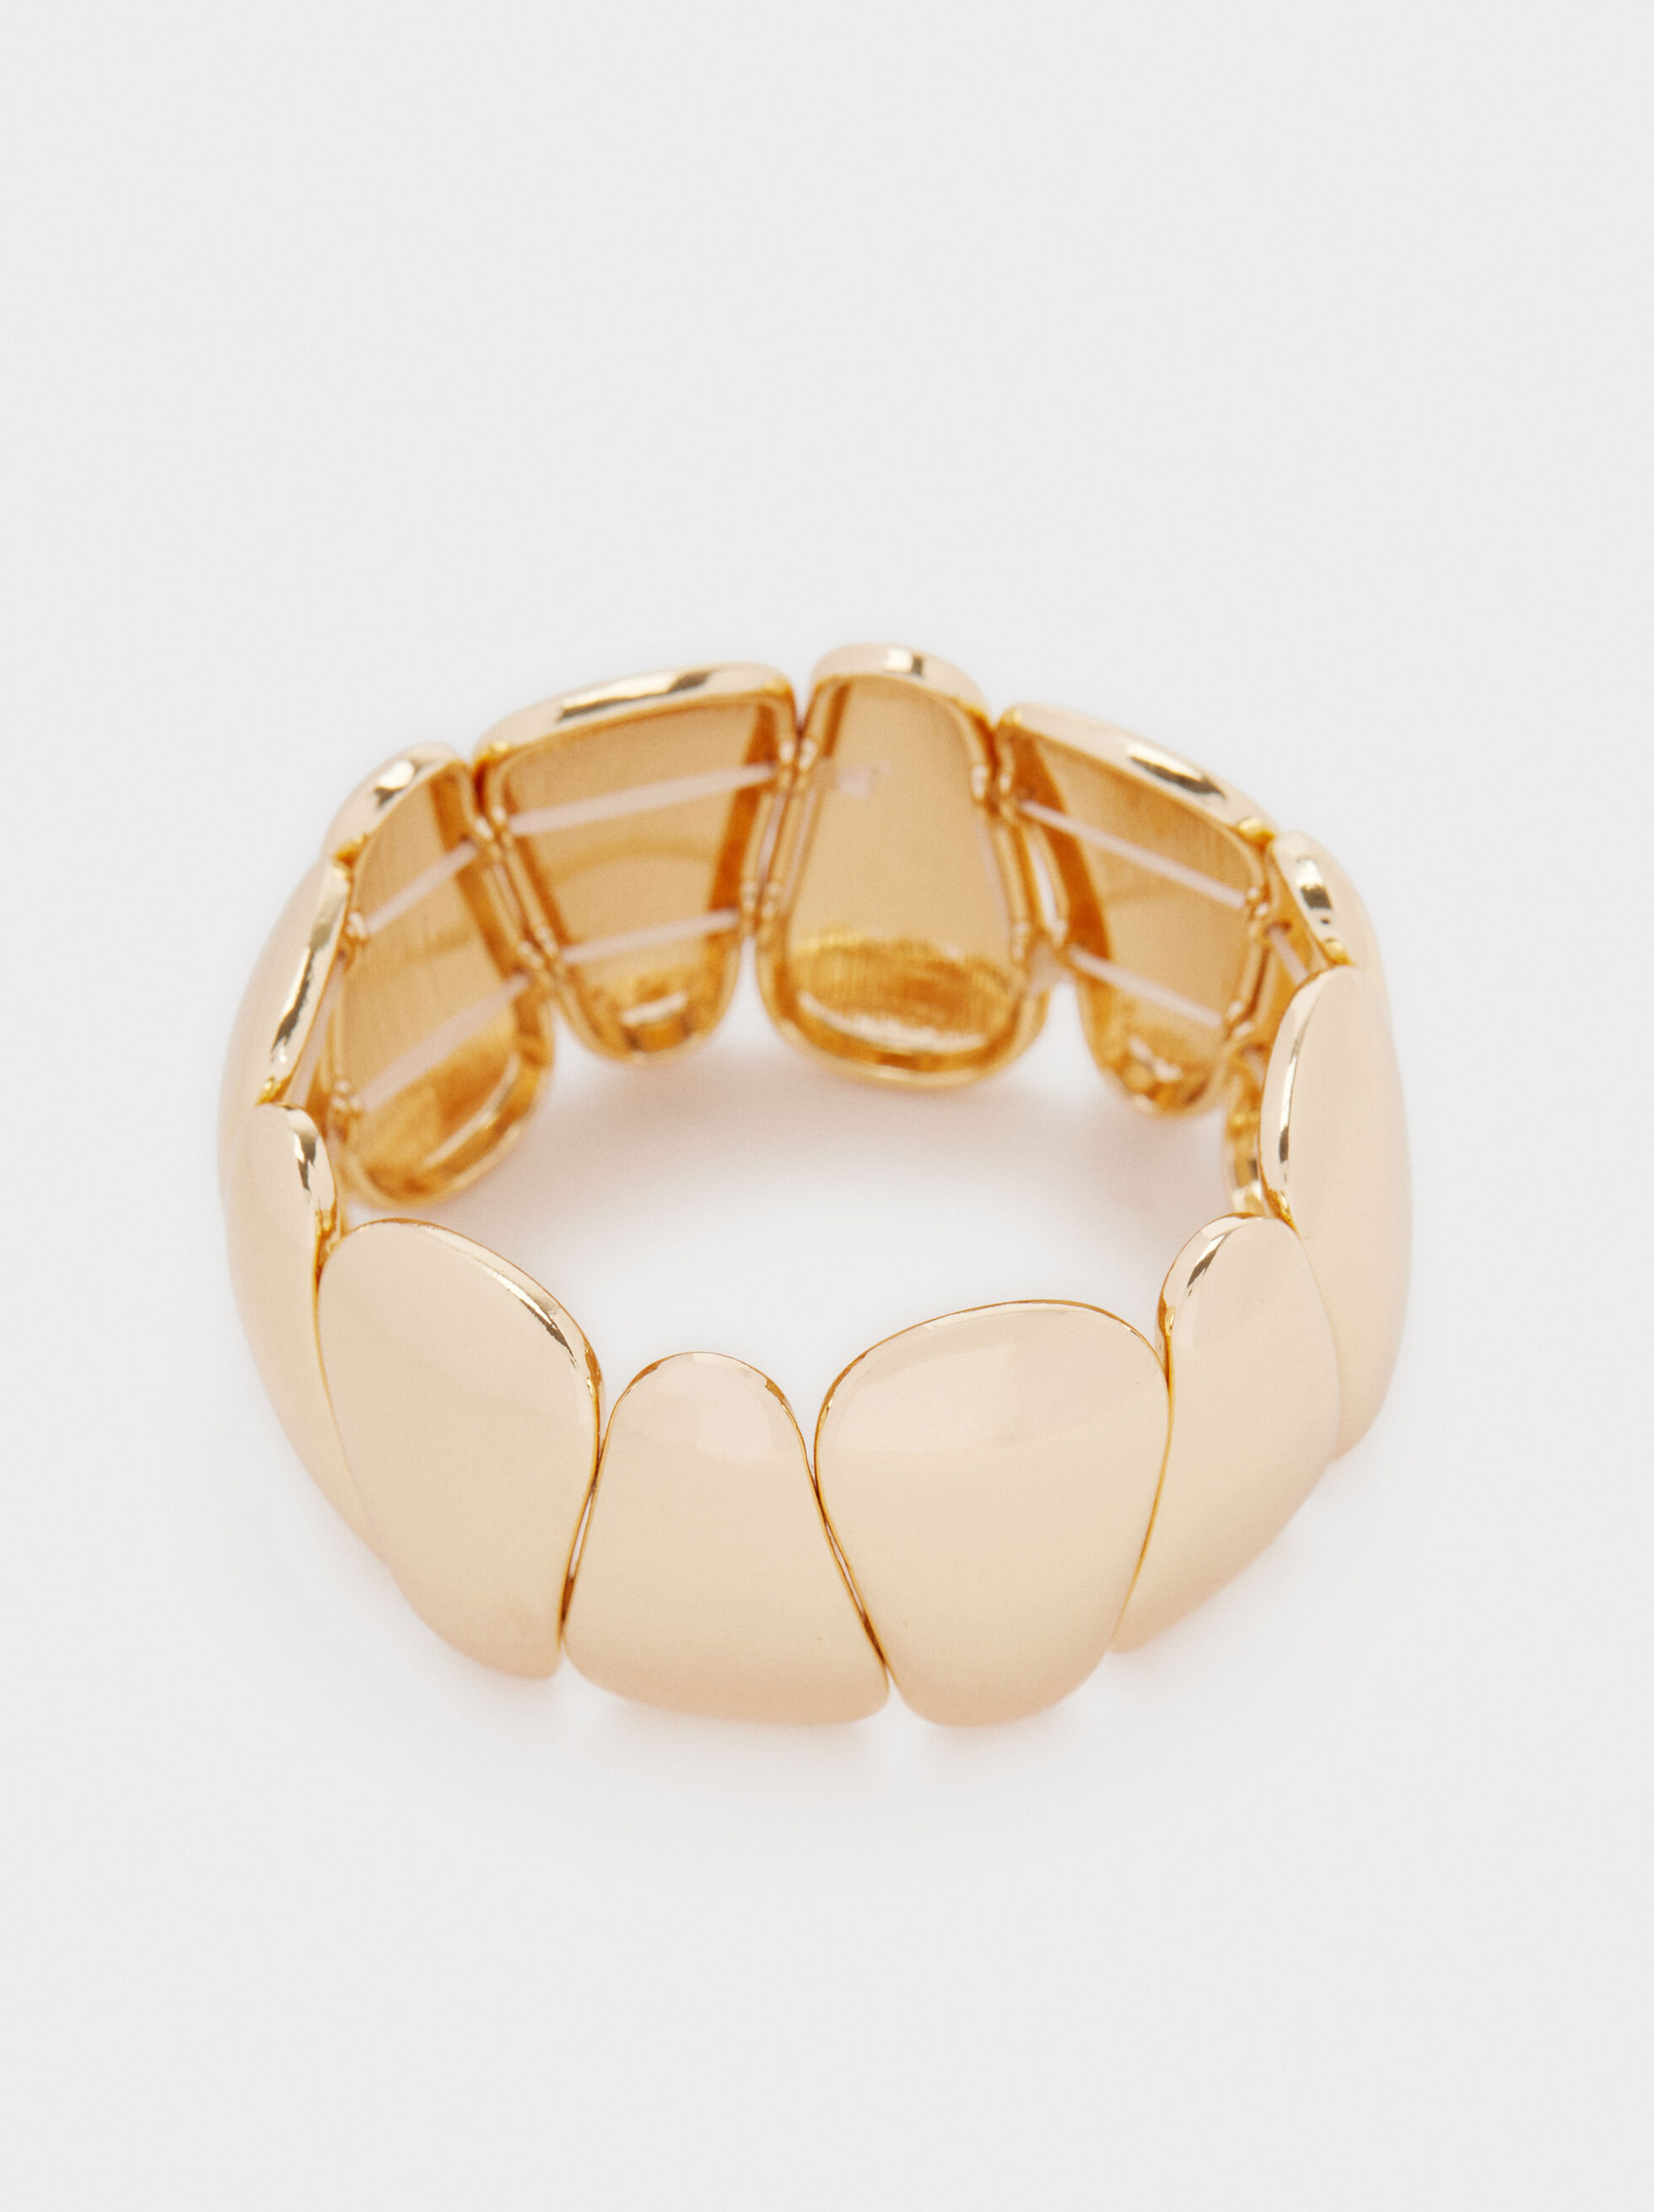 Gold Metallic Elasticated Bracelet, Golden, hi-res